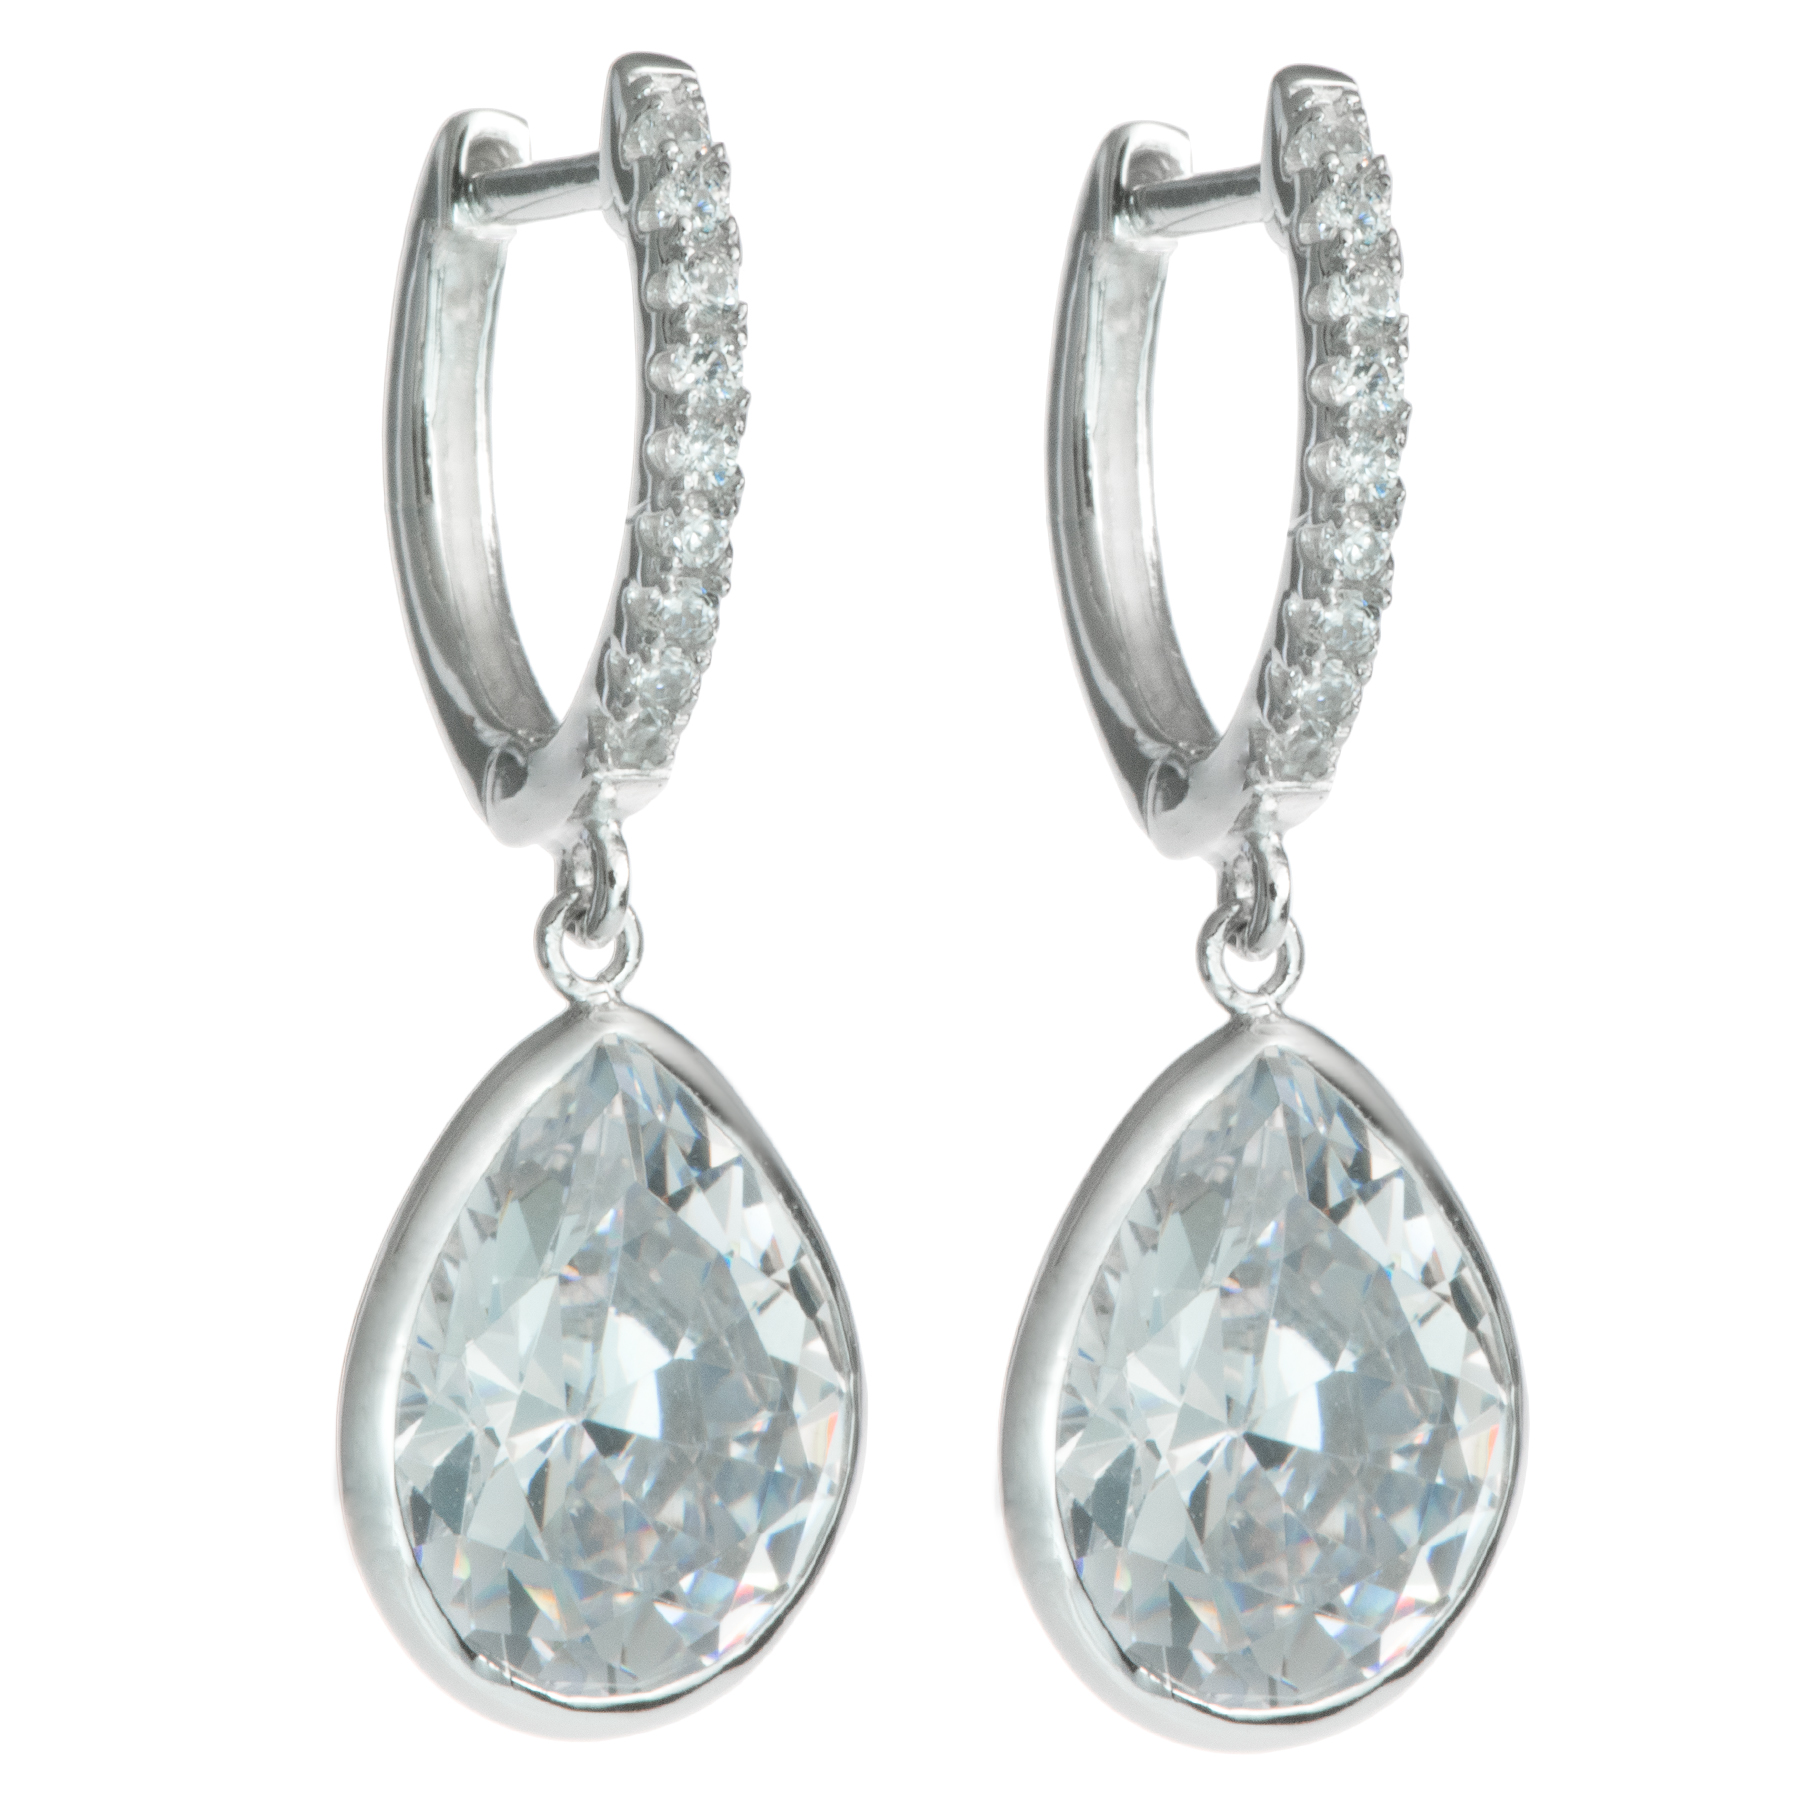 2x Rhodium on Sterling Silver Teardrop Clear CZ Crystal Charm Hoop Huggie Dangle Earring